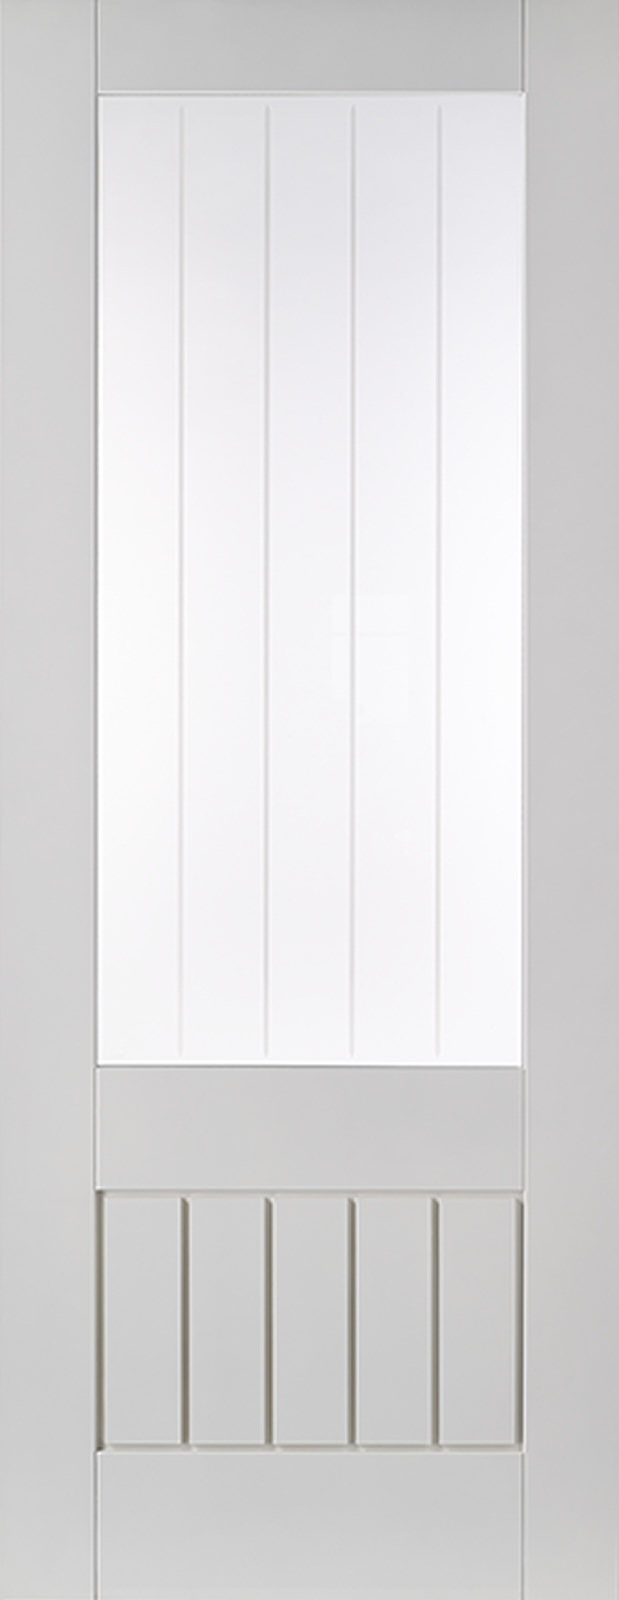 X Dordogne Glazed Door In White. & Dordogne Double Doors u0026 Double Door Access With Large Turning Circle ...